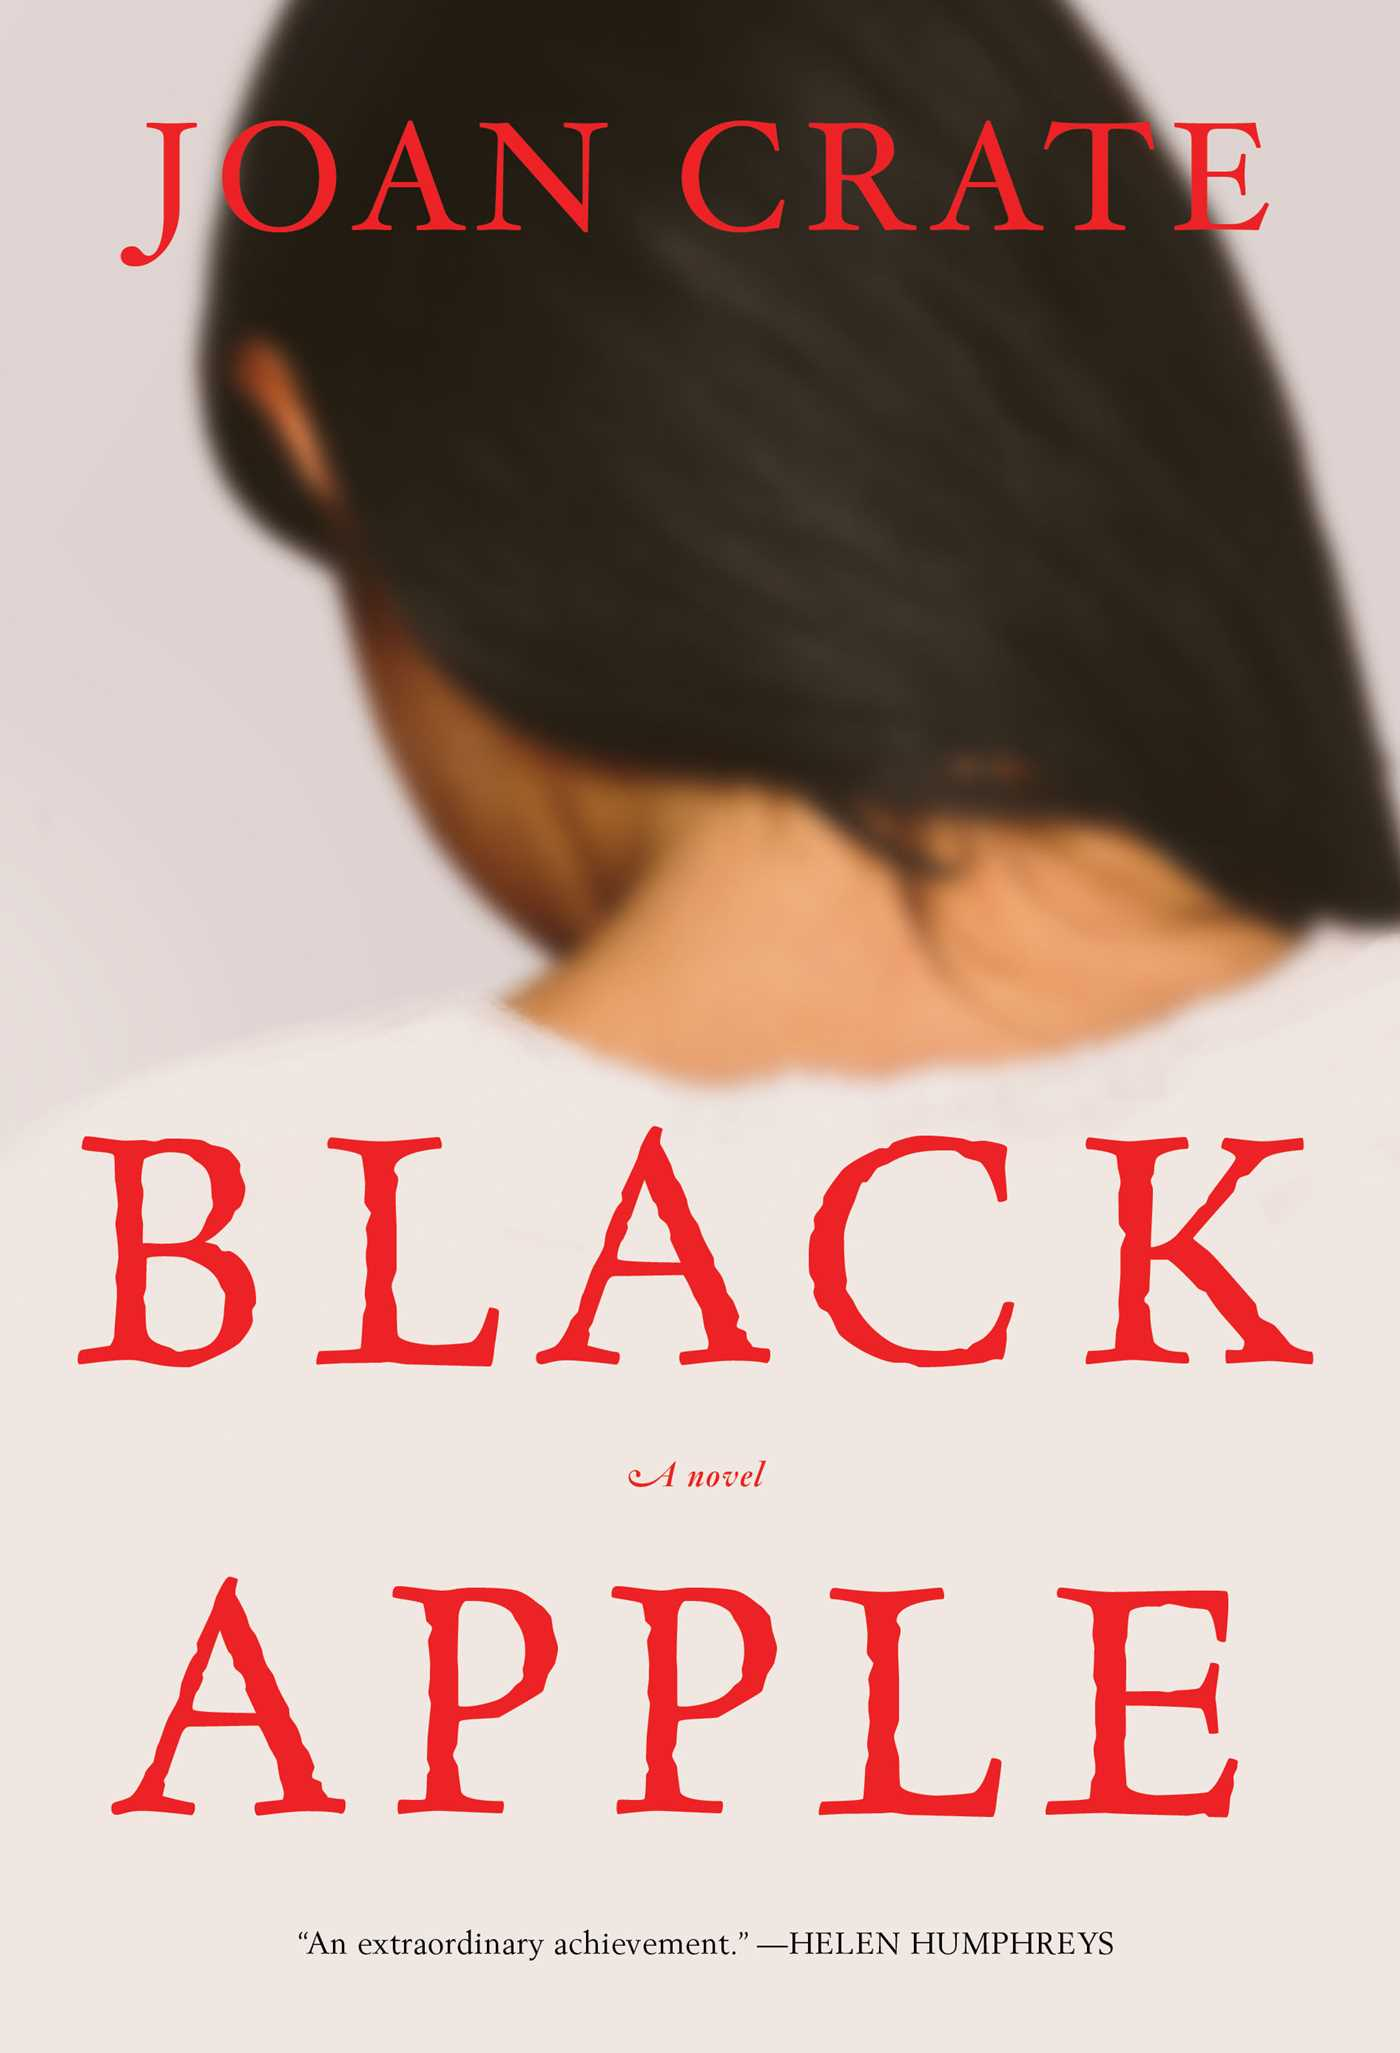 Black Apple, by Joan Crate